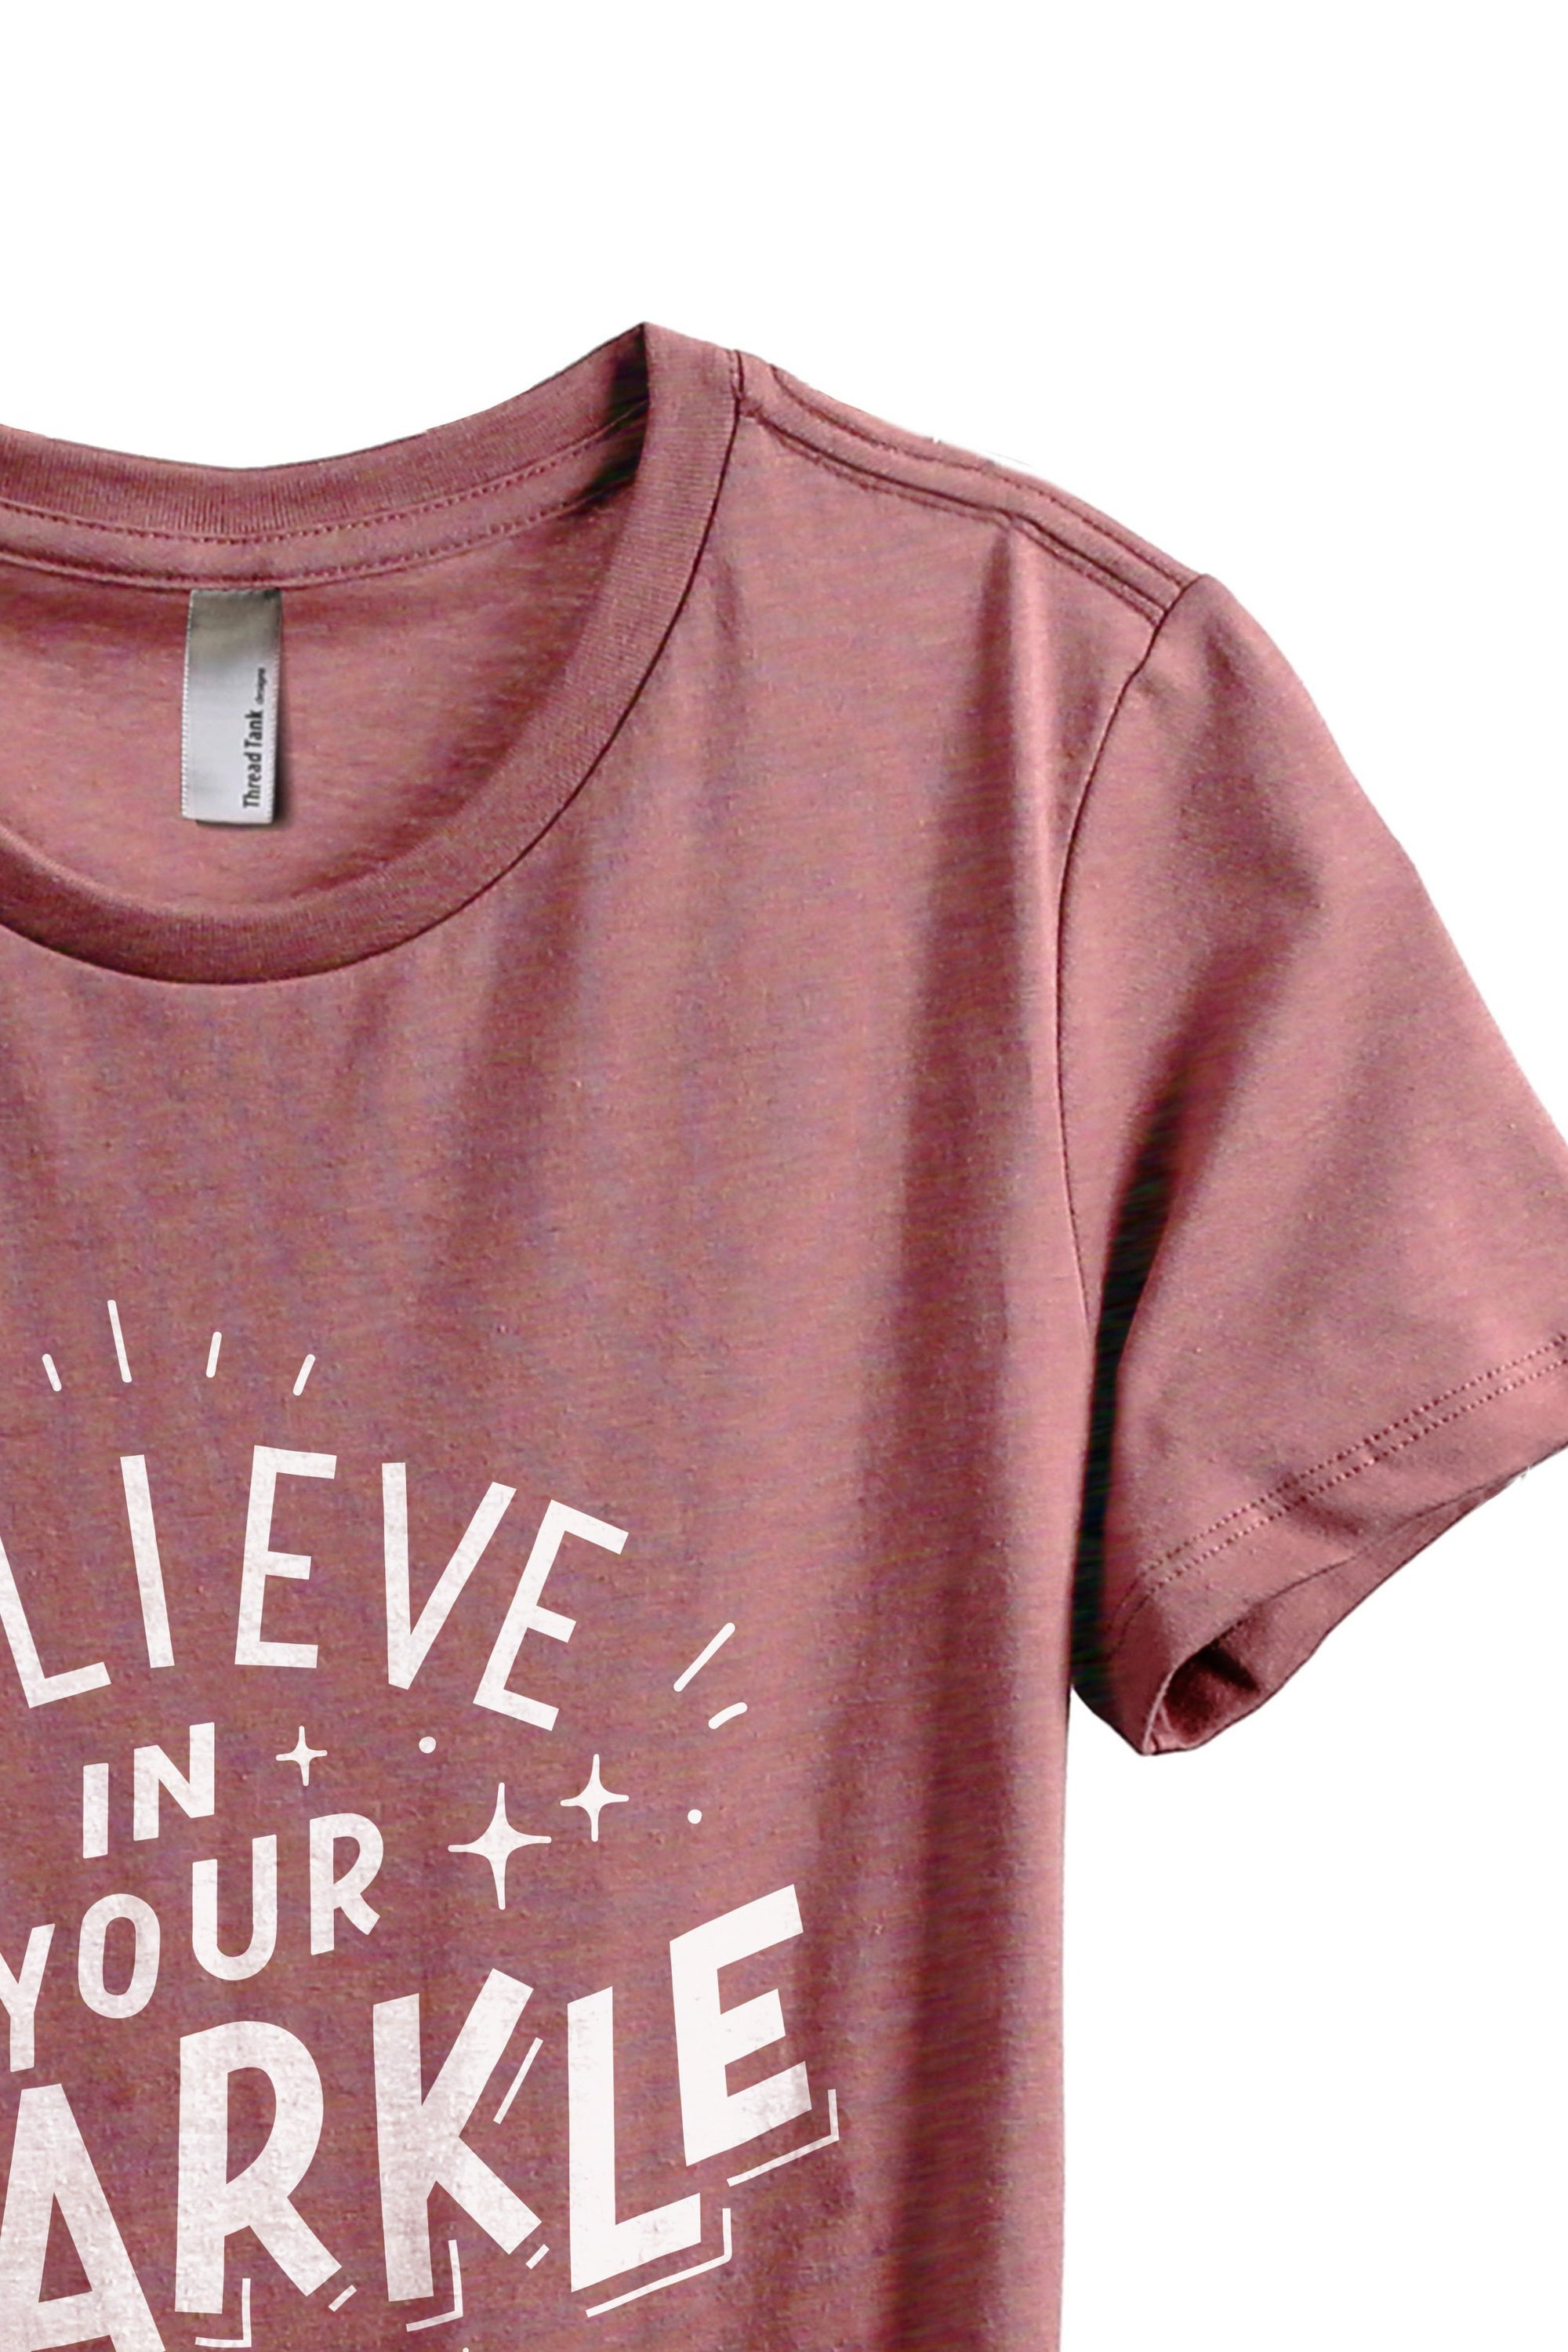 Believe In Your Sparkle - Stories You Can Wear by Thread Tank